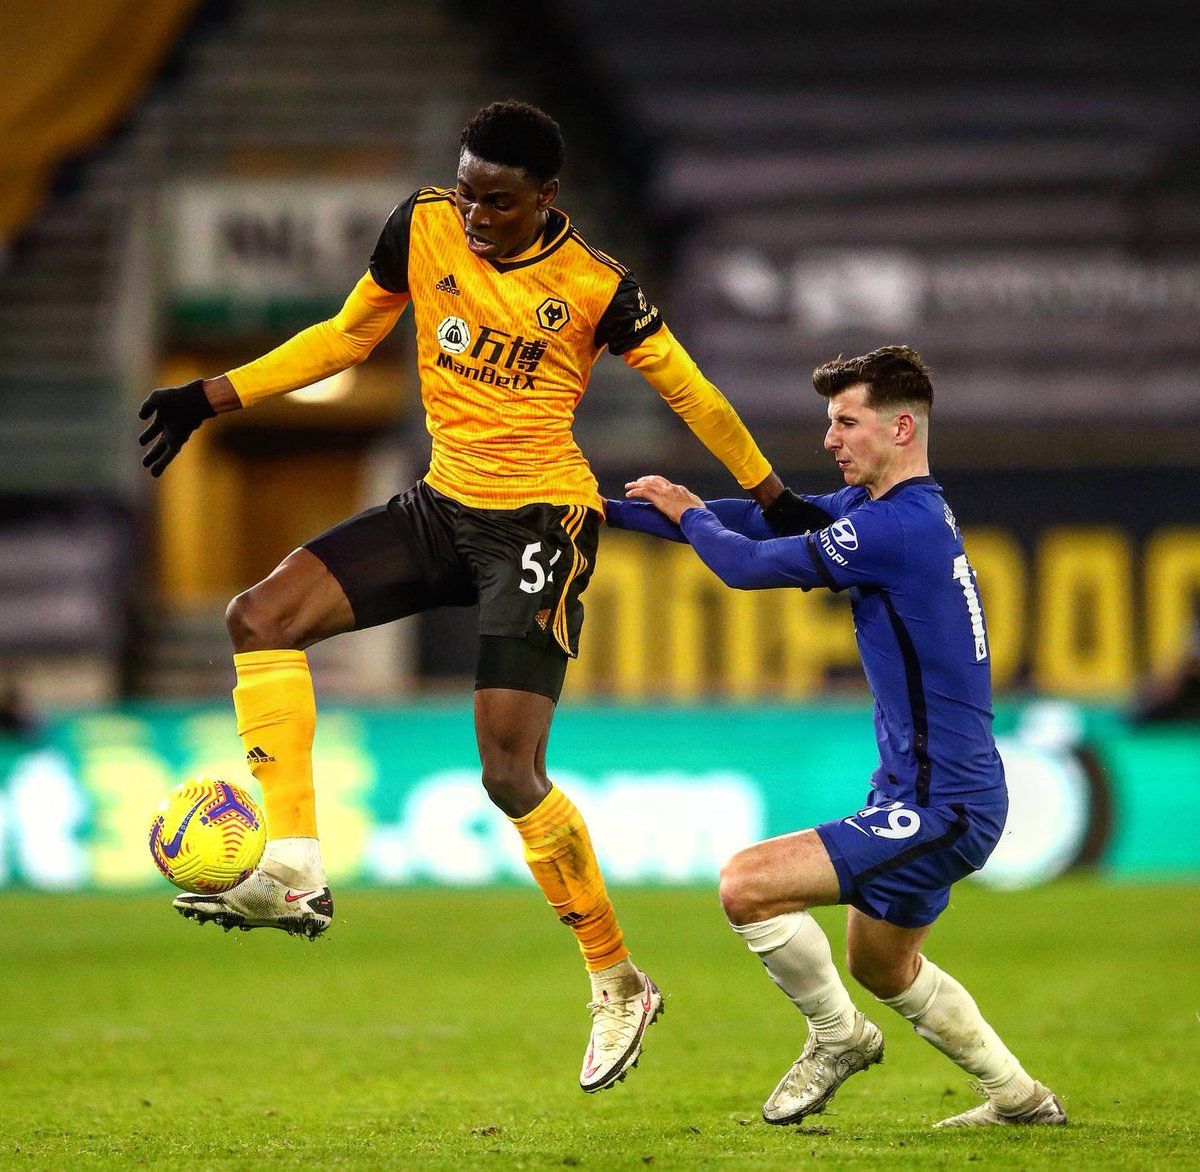 """Football Tweet on Twitter: """"Owen Otasowie. 19-years old. Born in New York.  Came on to make his Prem debut for Wolves tonight and he more than  impressed against Kanté and co. At"""